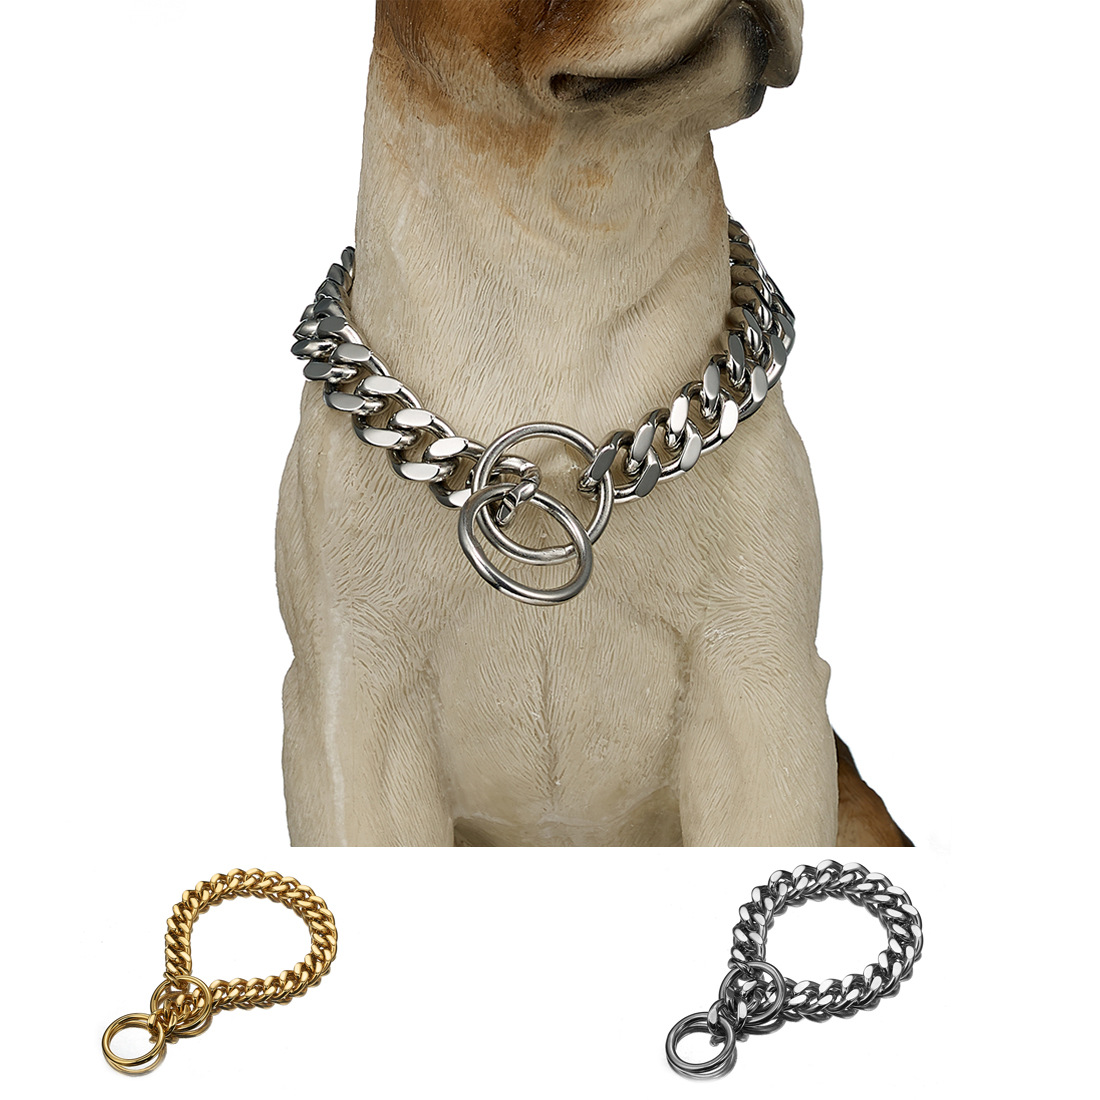 12 Mm/15mm Denim Pendant Pet Dog Chain A Set Of P Pendant Stainless Steel Neck Ring Hand Holding Rope Supply Of Goods